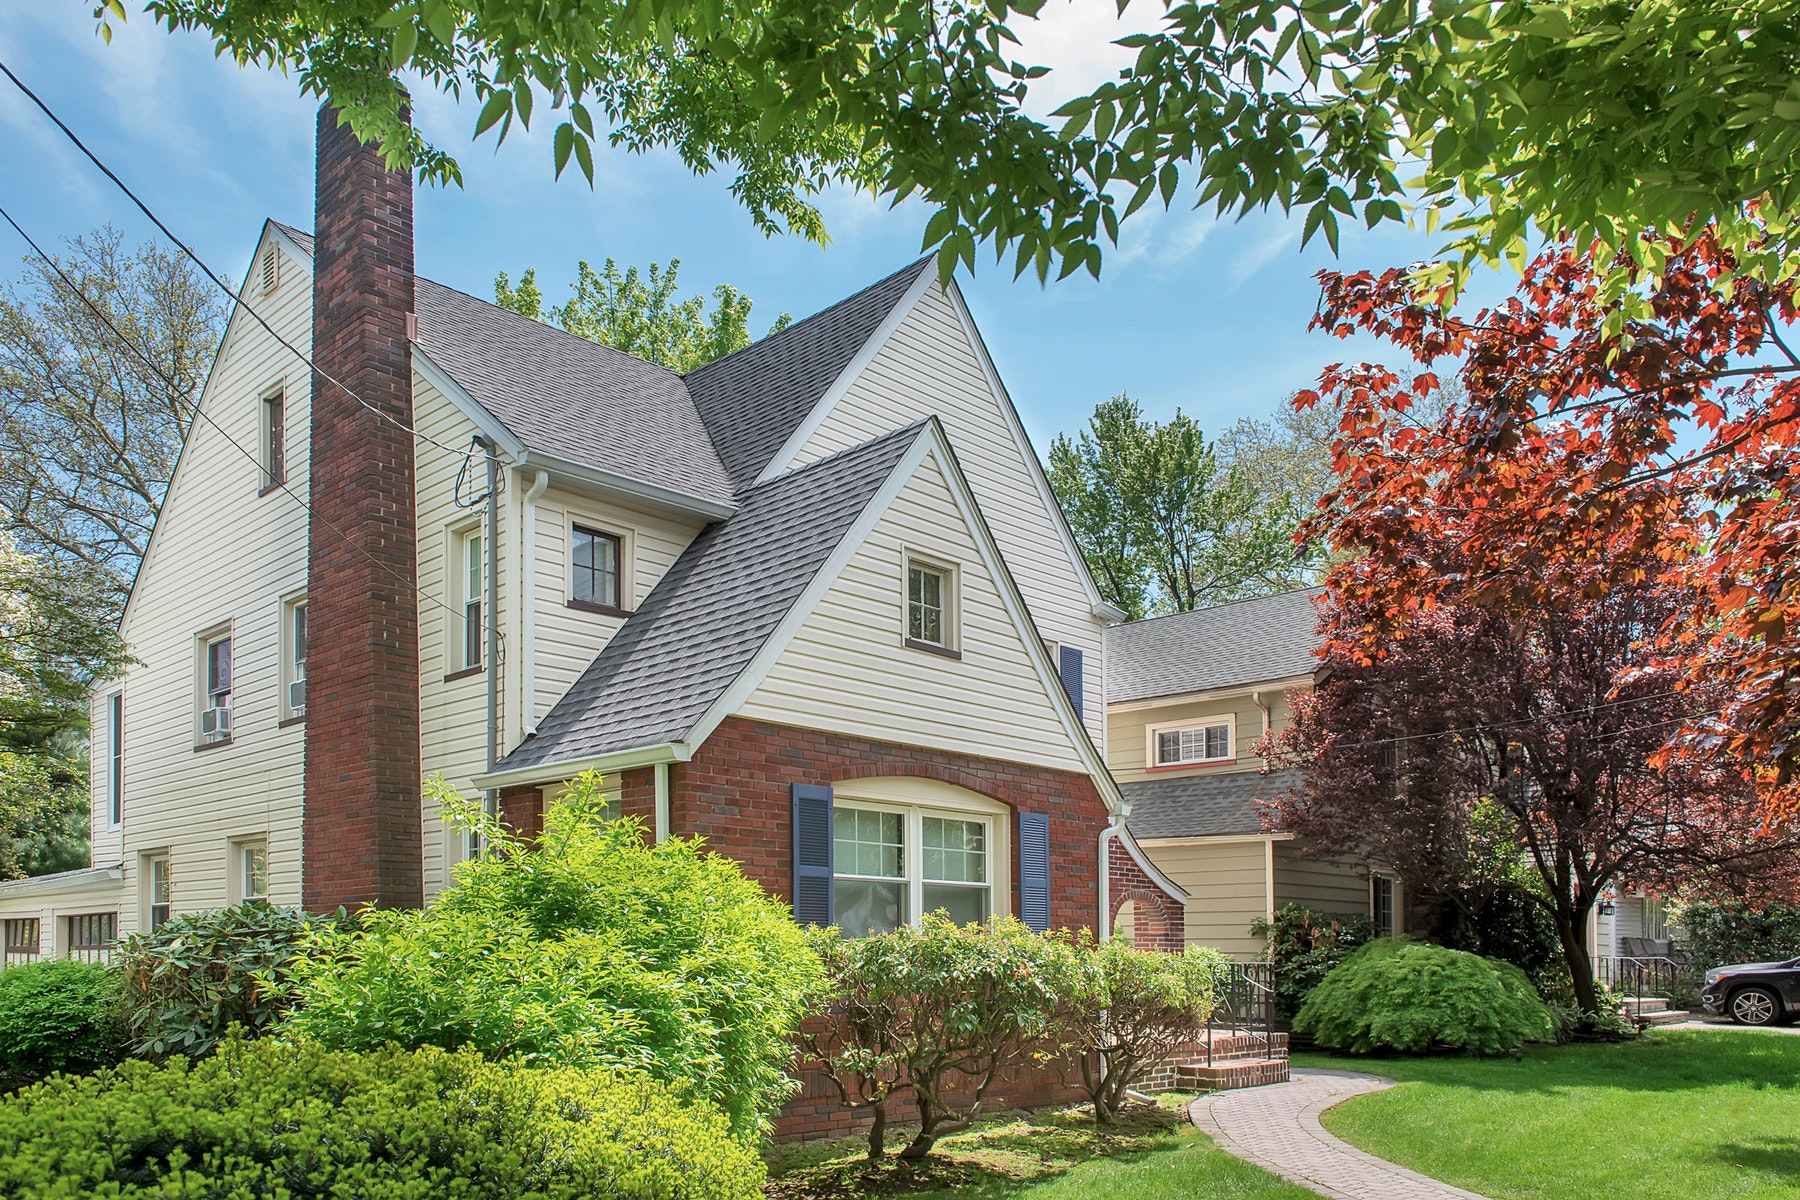 Single Family Homes for Sale at Brookdale Home 2 OAKRIDGE RD Bloomfield, New Jersey 07003 United States